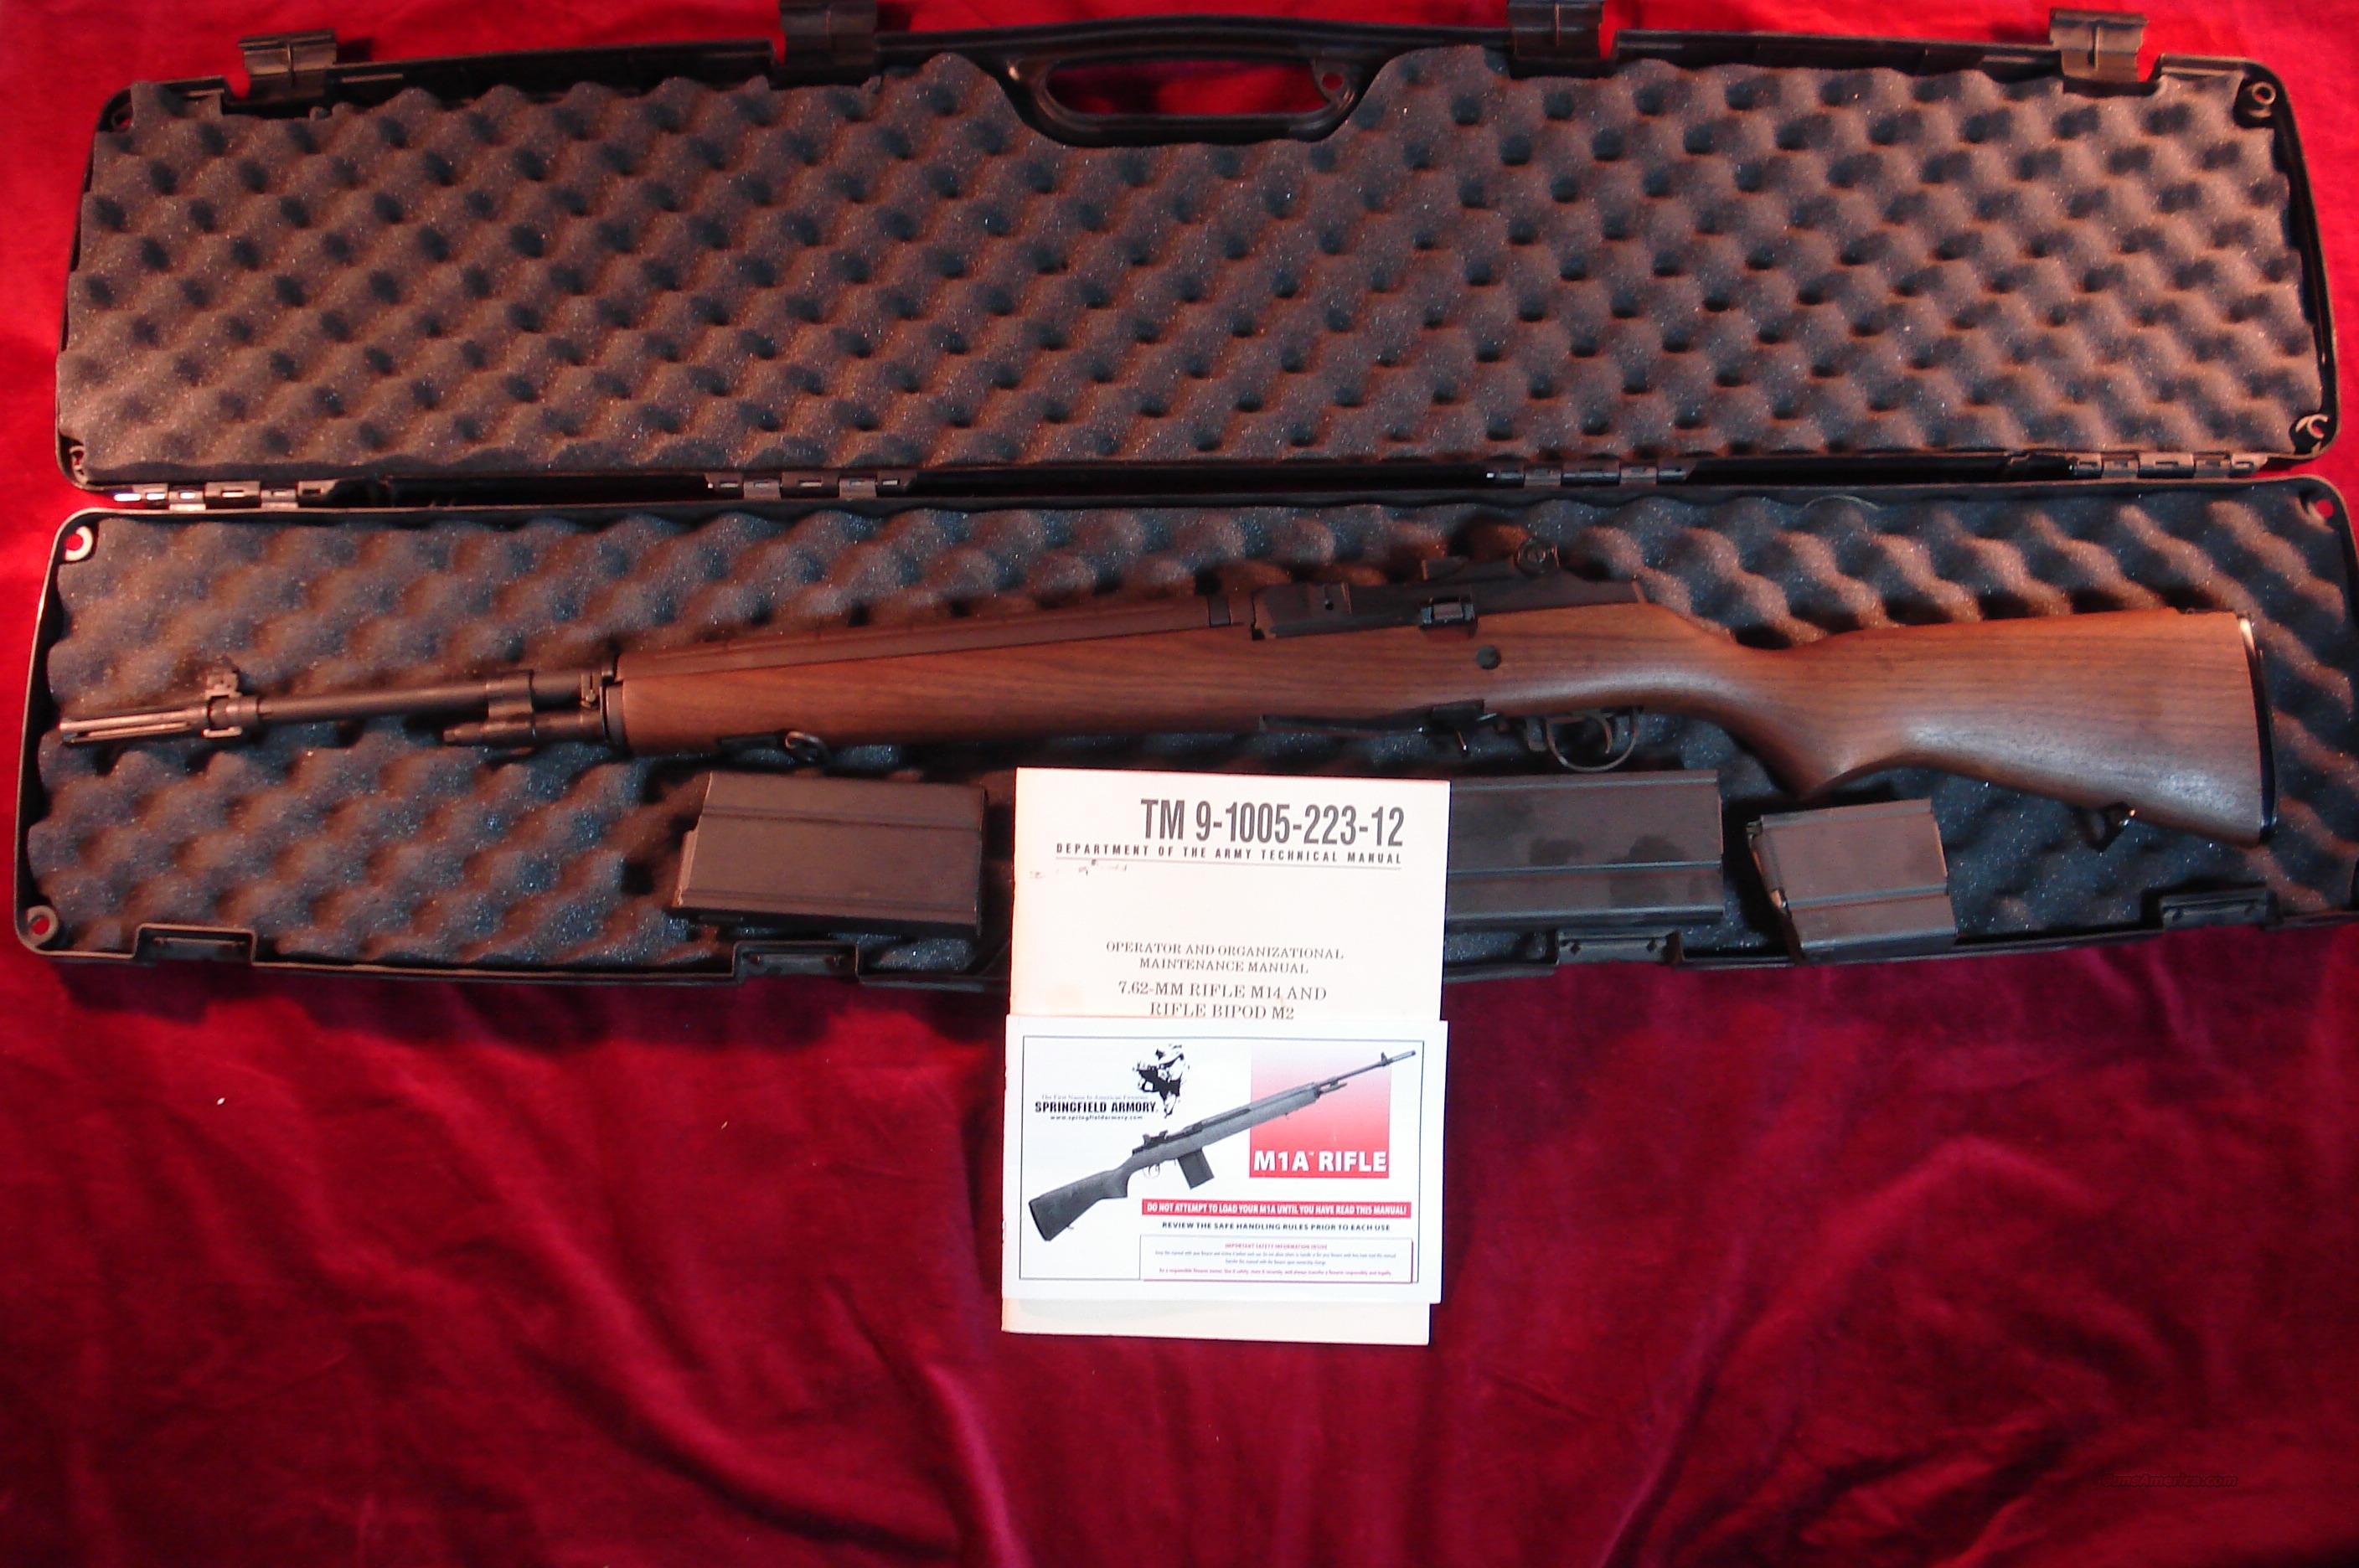 SPRINGFIELD M1A NATIONAL MATCH 308 CAL USED, AS NEW  Guns > Rifles > Springfield Armory Rifles > M1A/M14